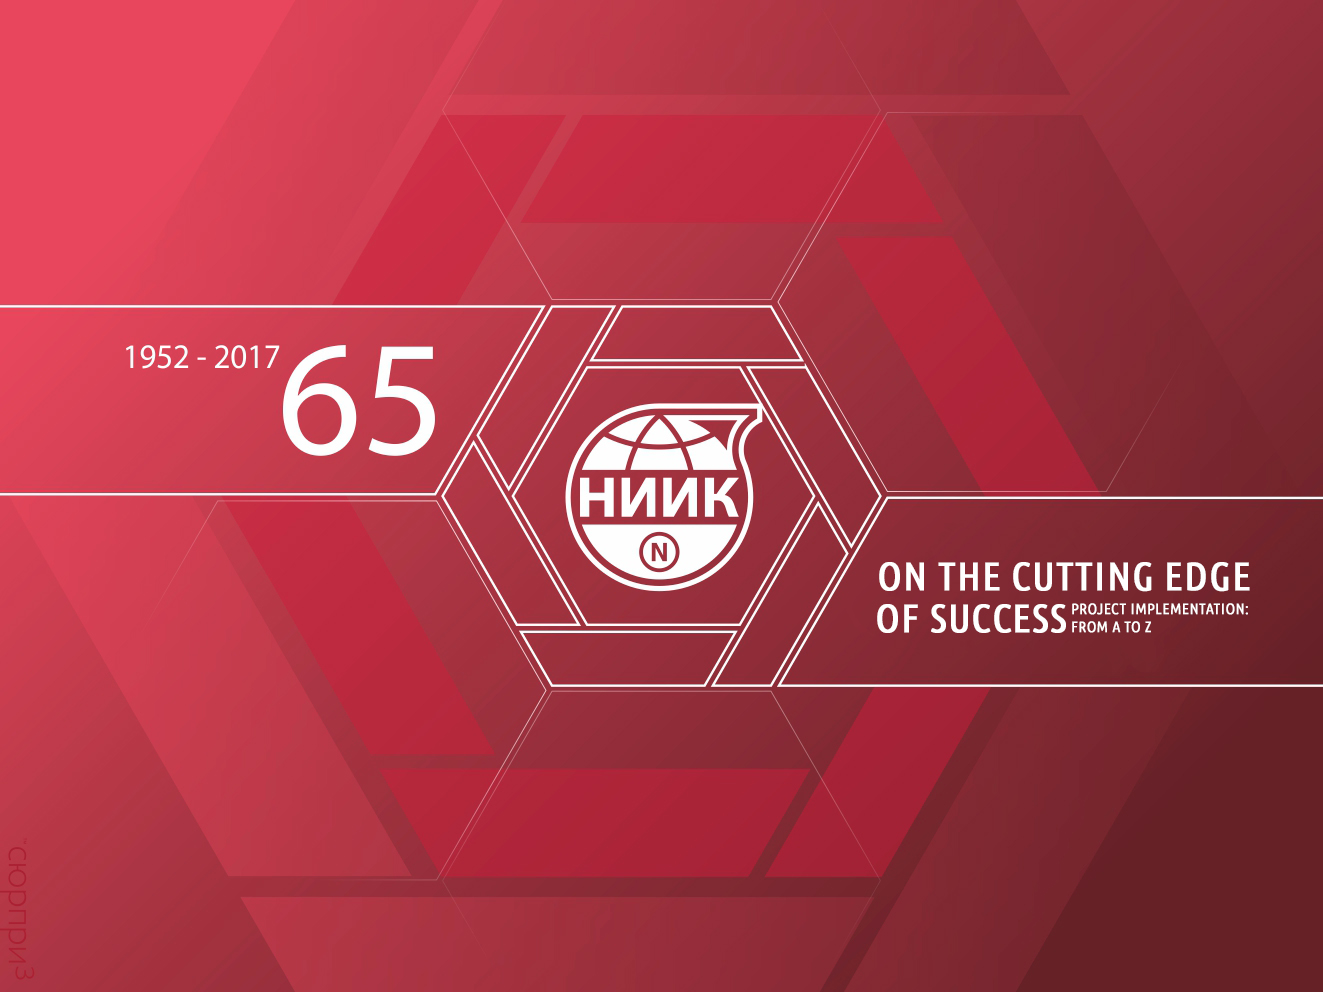 NIIK Company celebrates 65th anniversary as the world's leading provider of high-value services